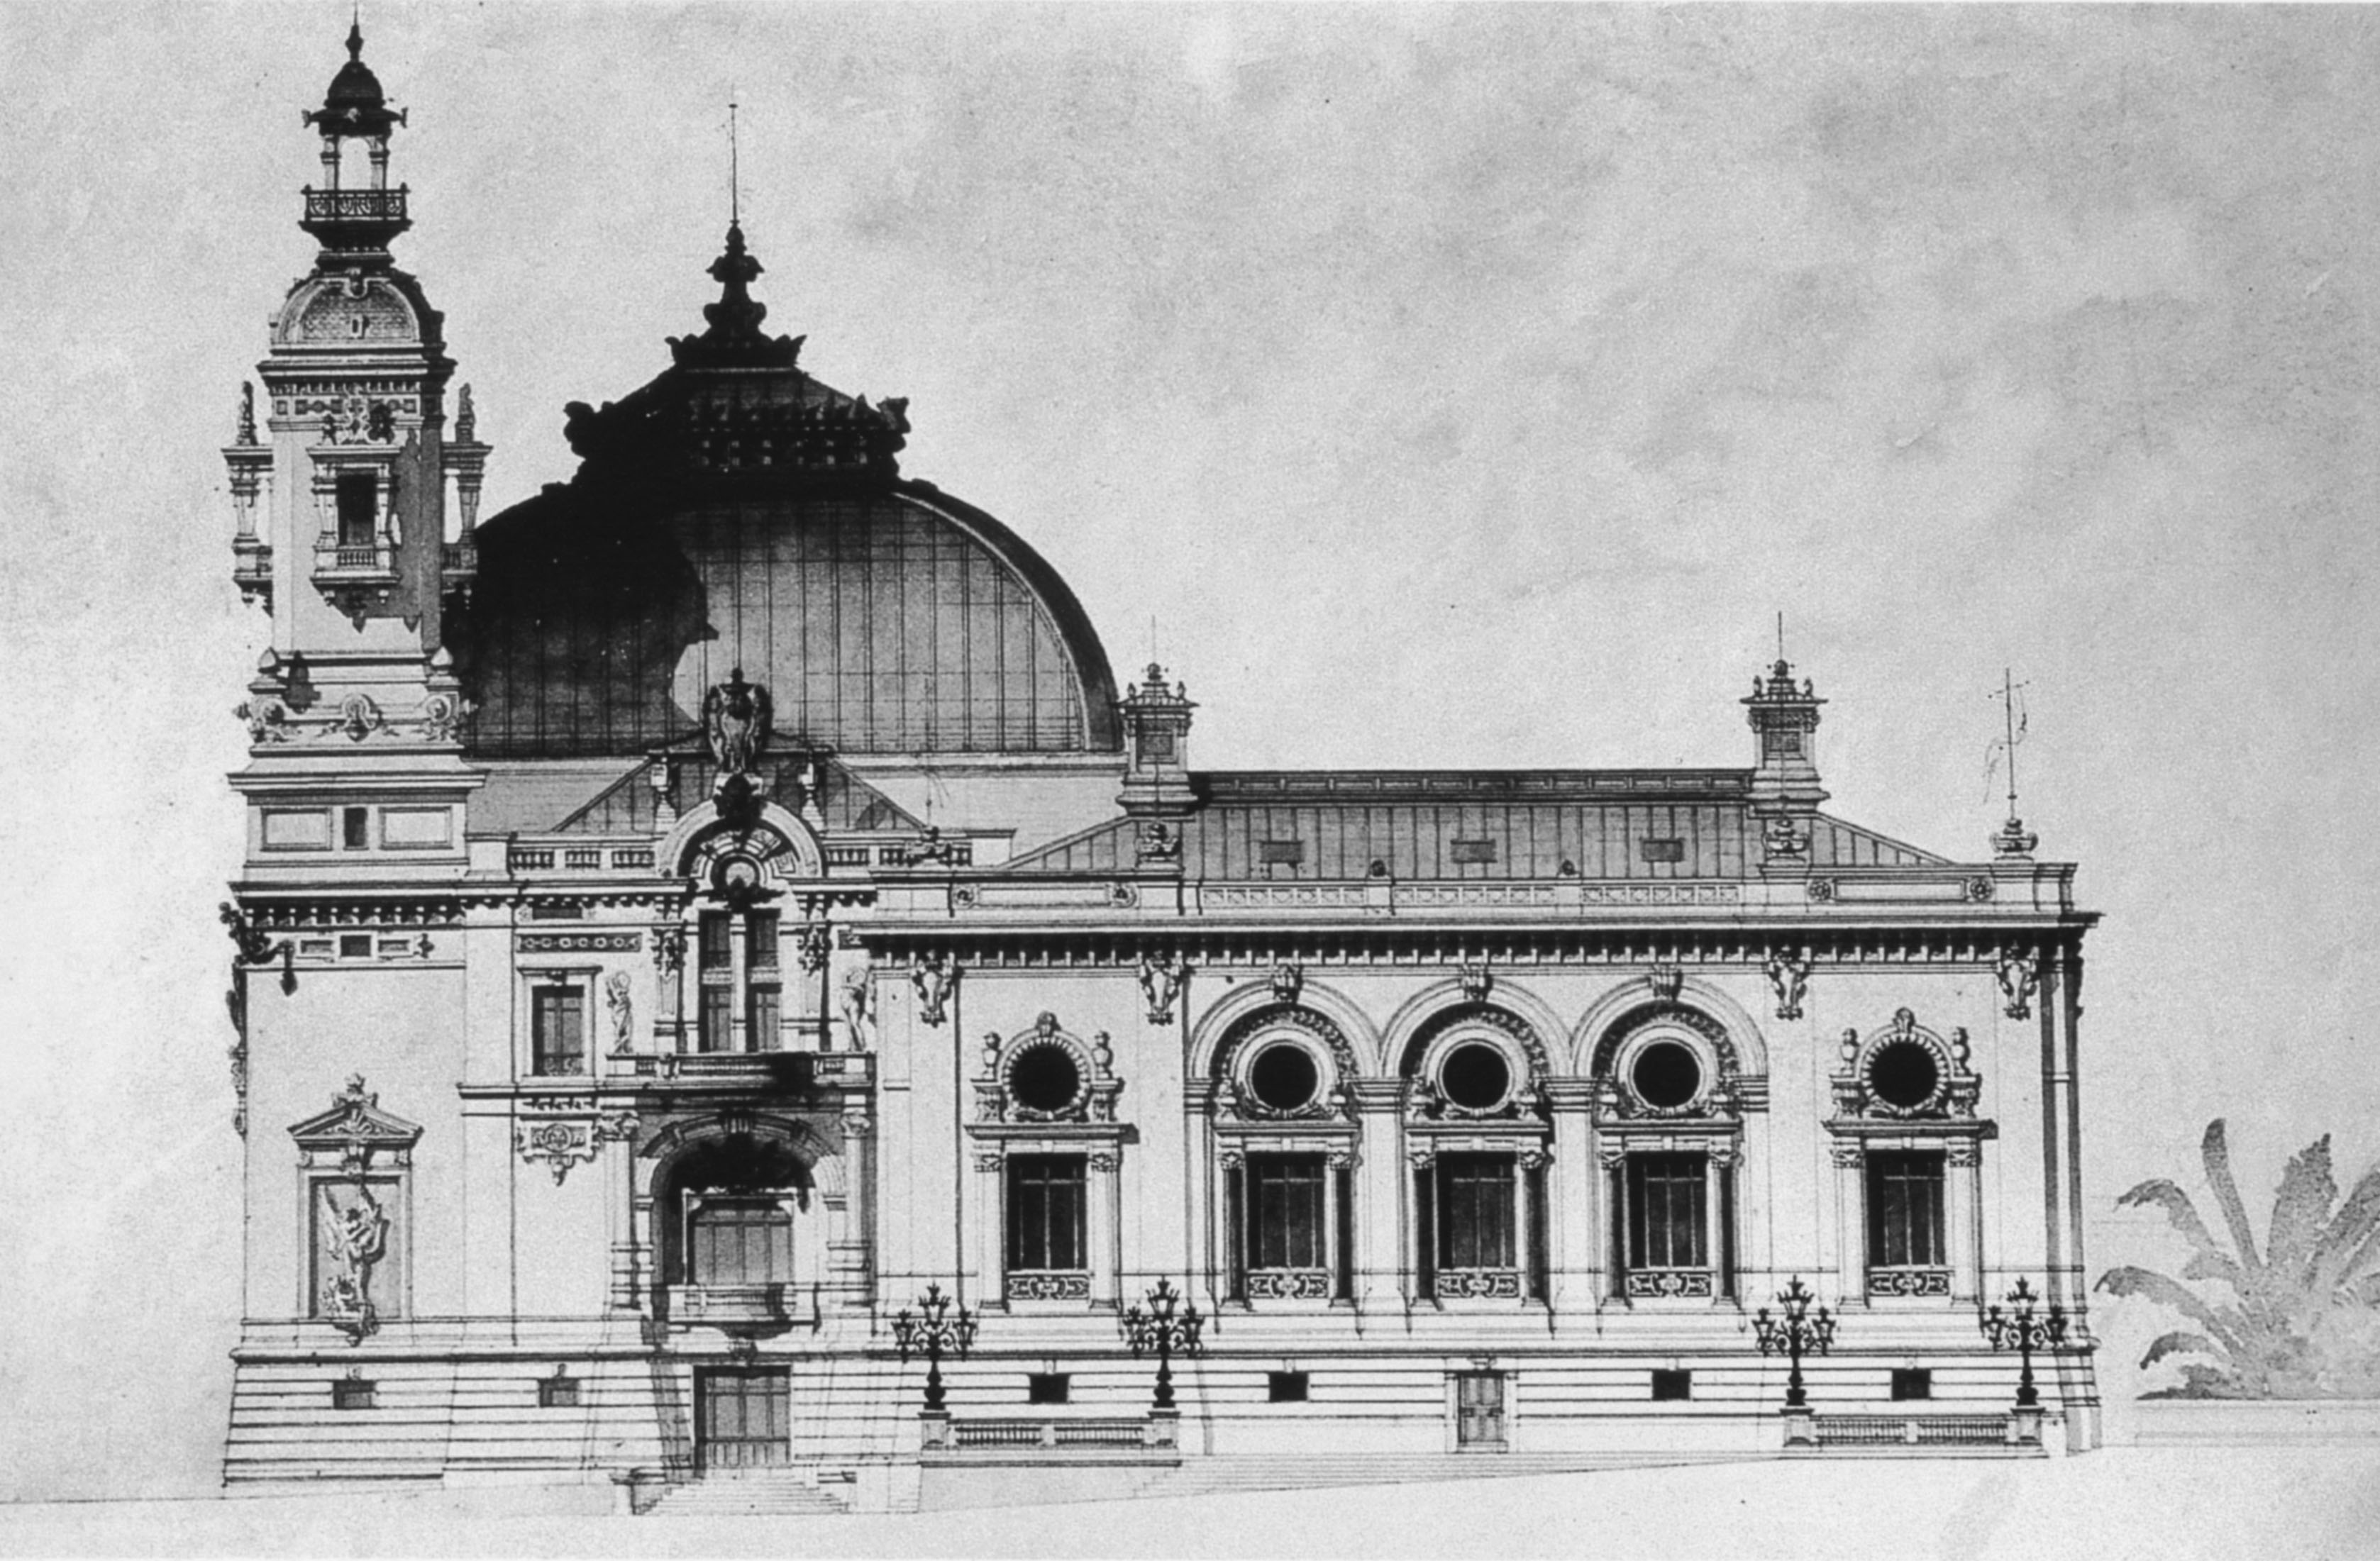 The eastern facade of the Monte Carlo Casino (1878-80), which housed the Trente et Quarante (Thirty and Forty), a French card game popular at casinos in France, Italy and Monaco in the 19th century; the predecessor of blackjack.